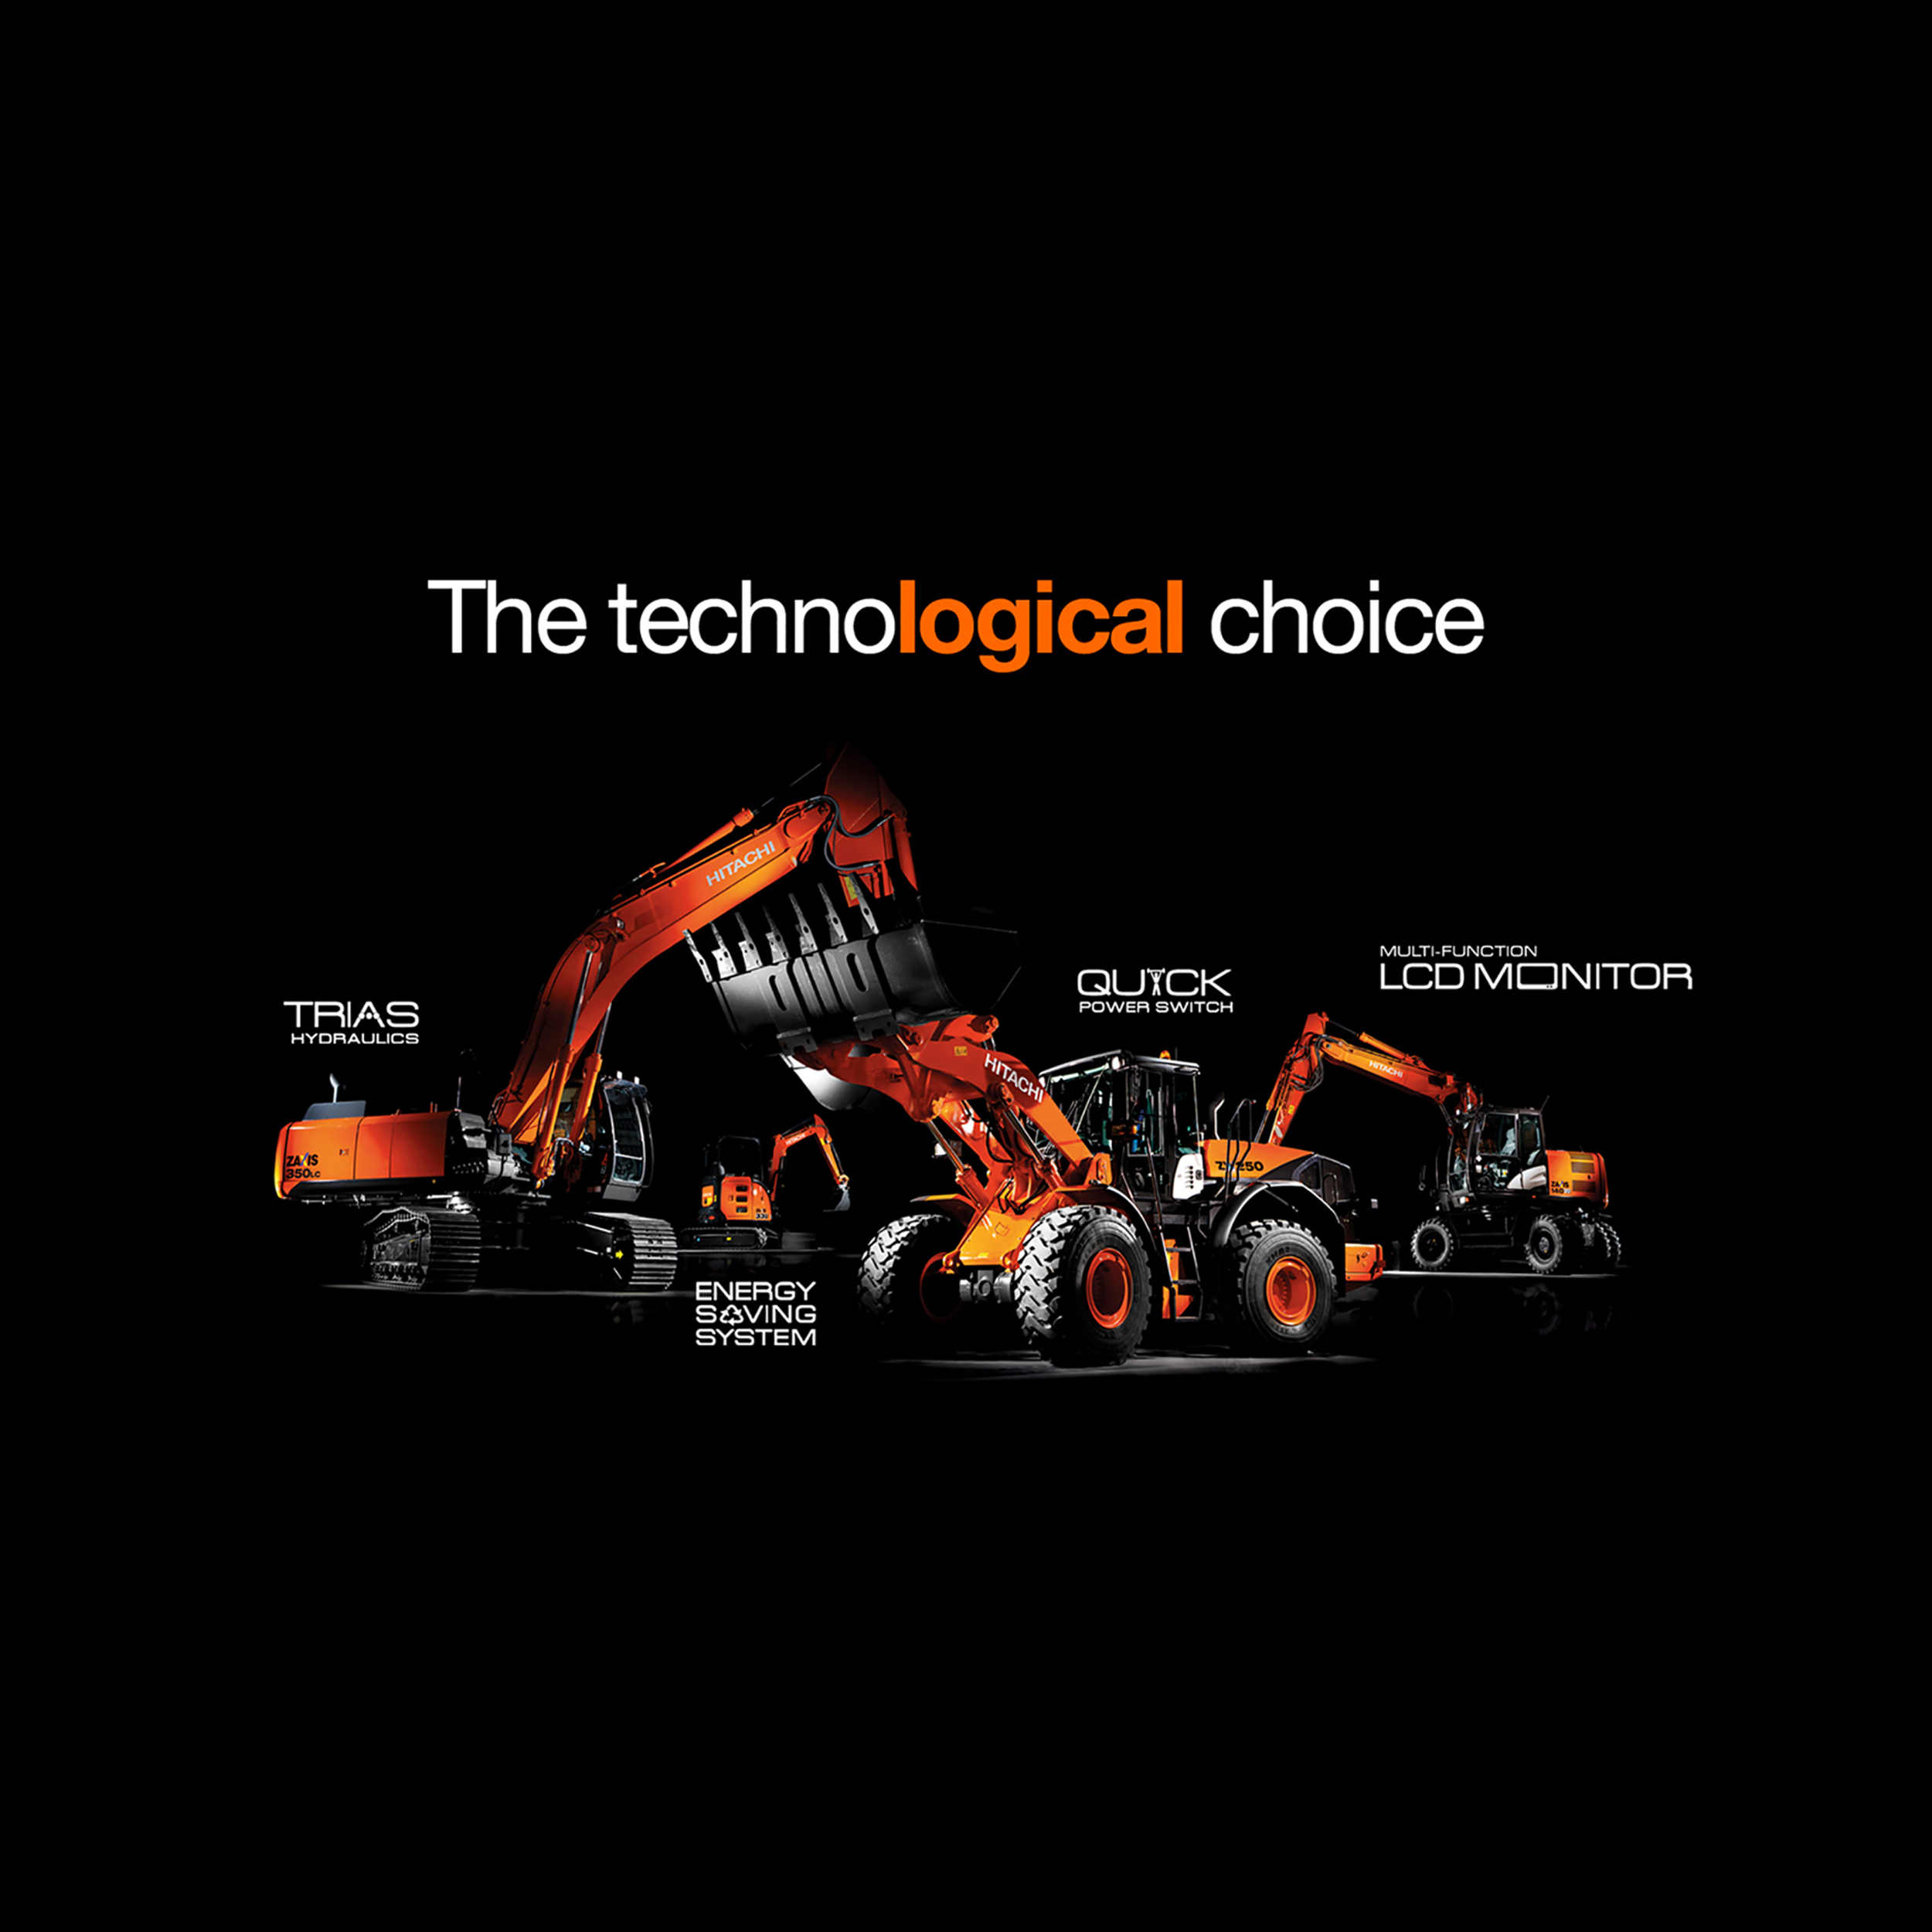 The technological choice